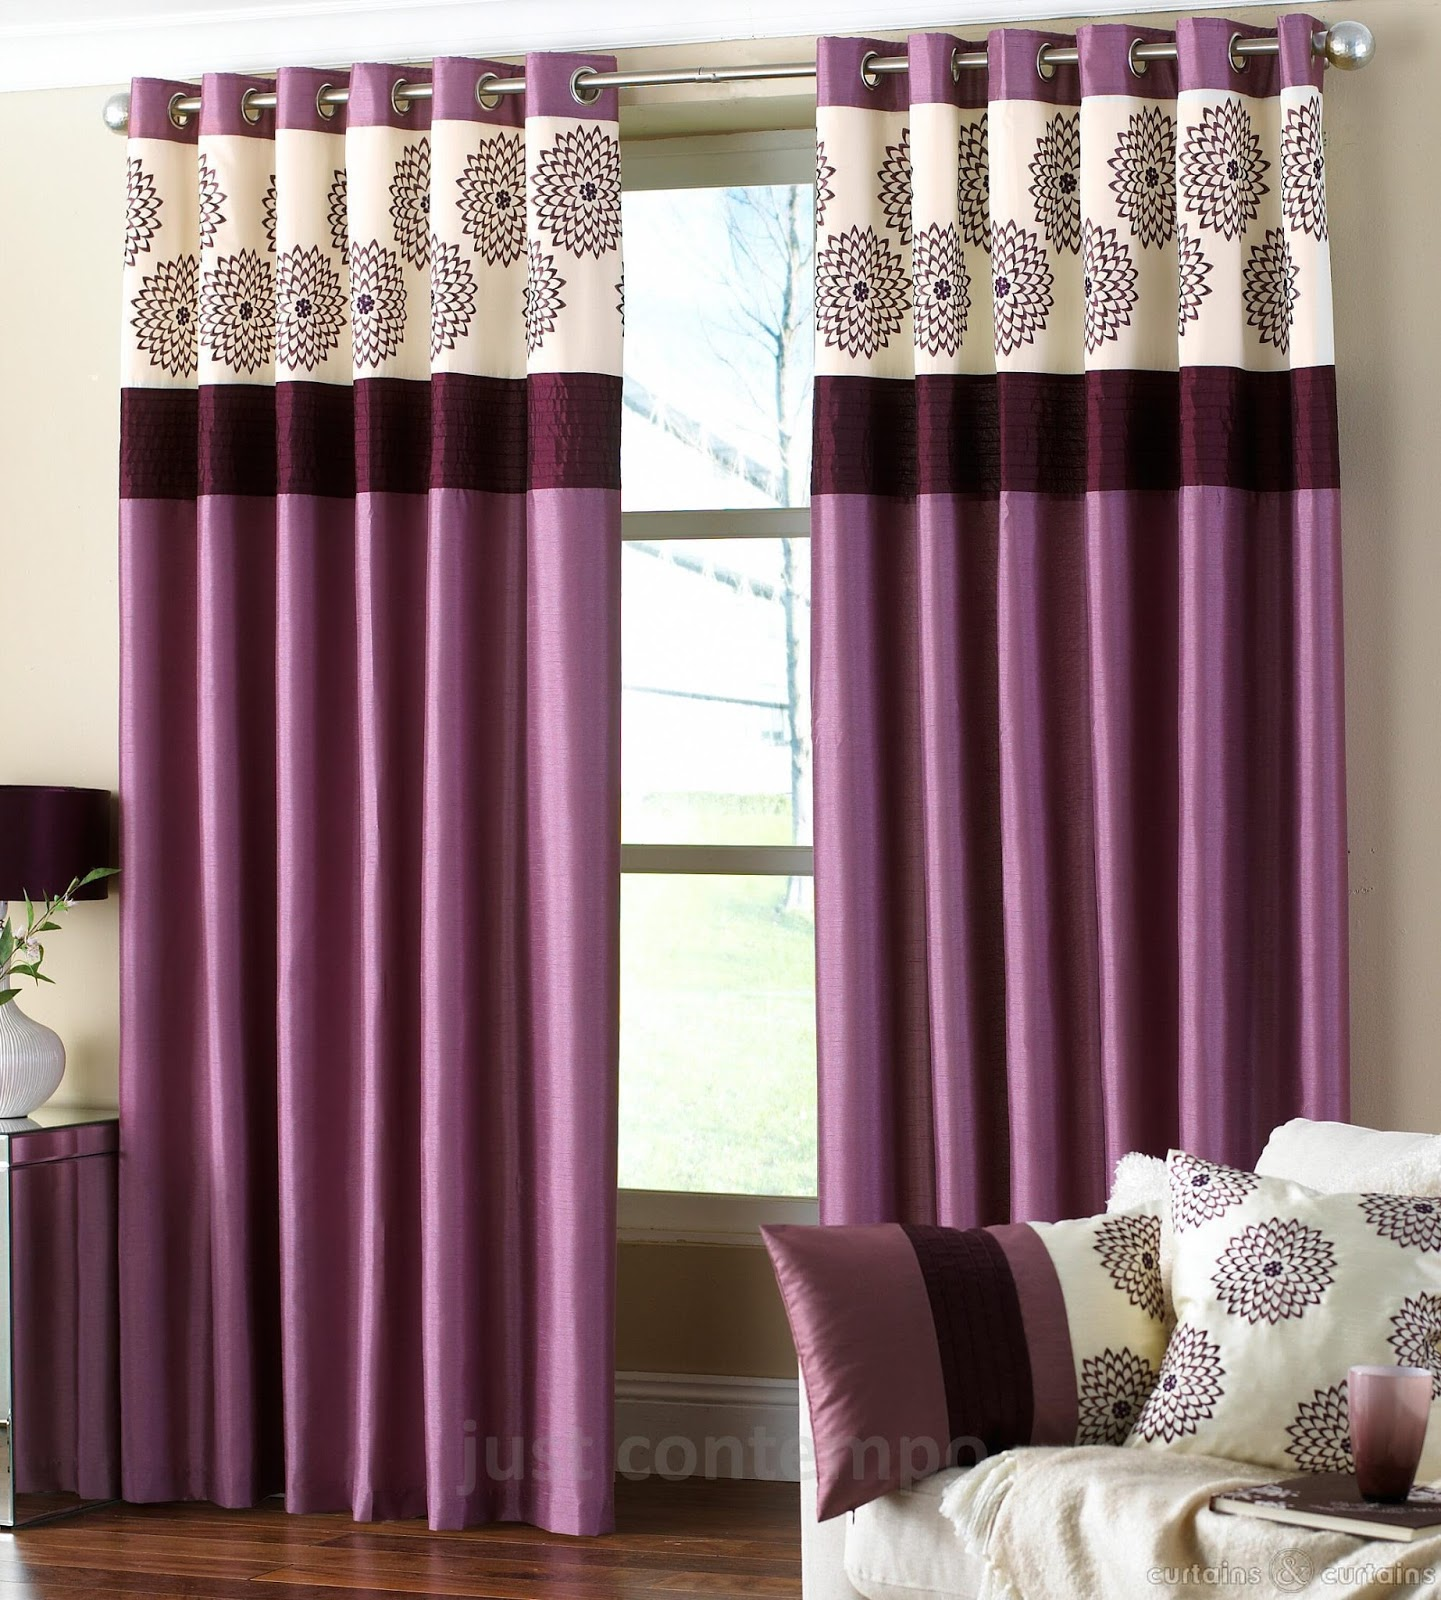 Concealed Tab Top Curtains Concertina Shower Curtain Concrete Wall Conduit Rod Rods